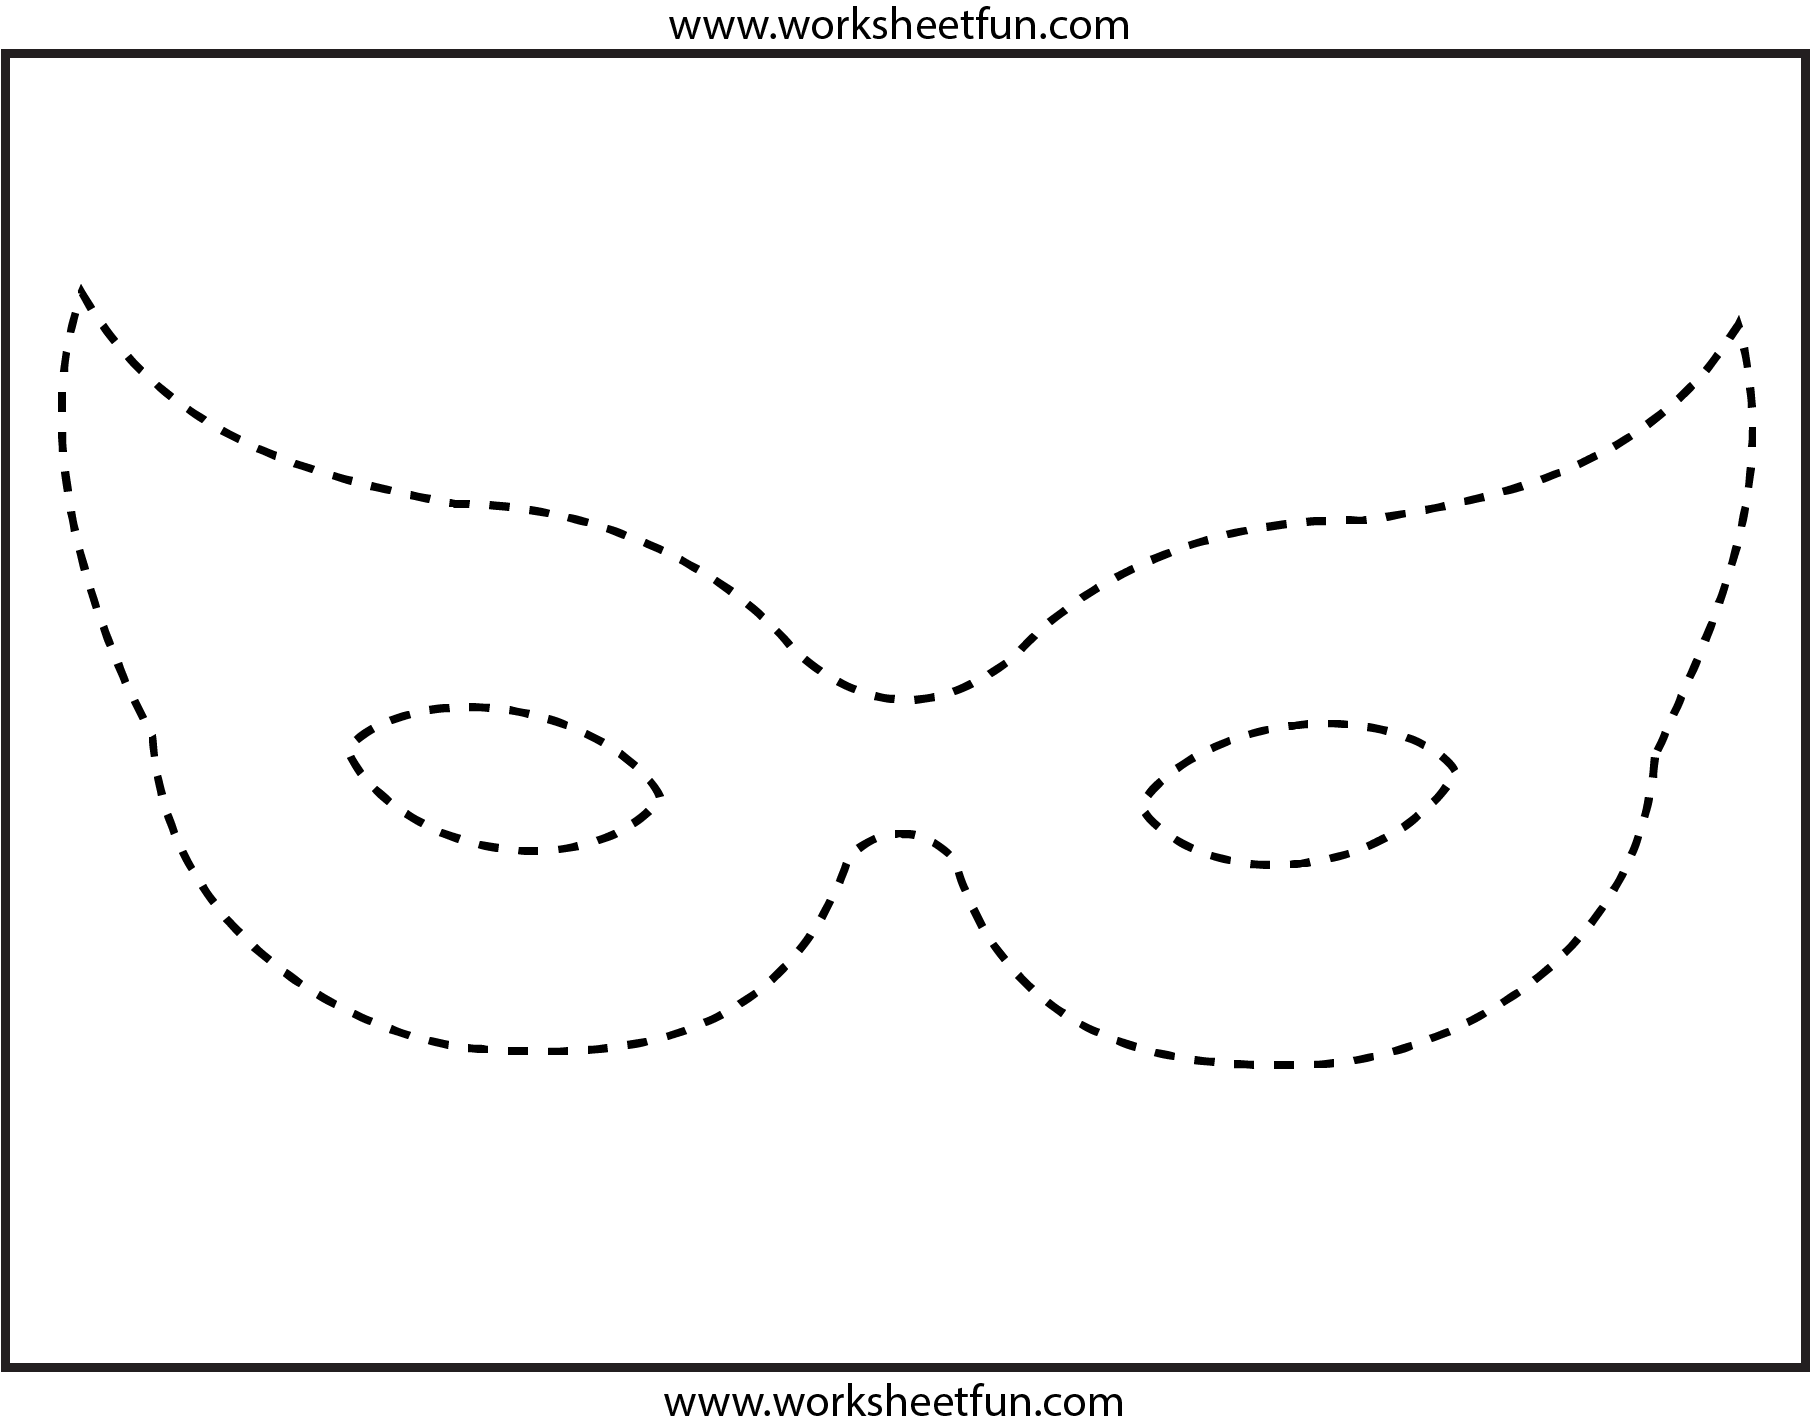 Mask Tracing 1 Worksheet Free Printable Worksheets Worksheetfun